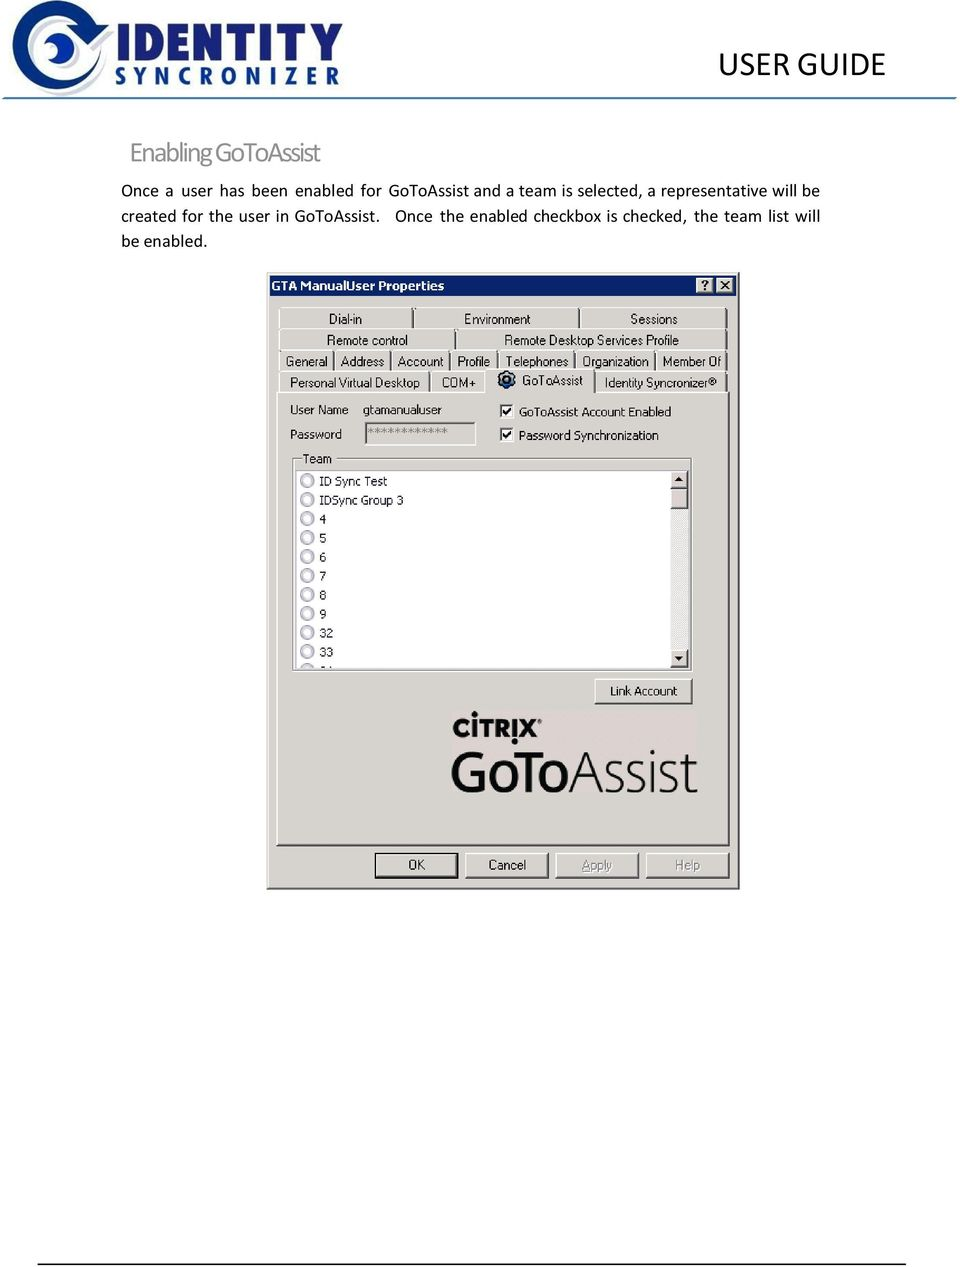 representative will be created for the user in GoToAssist.